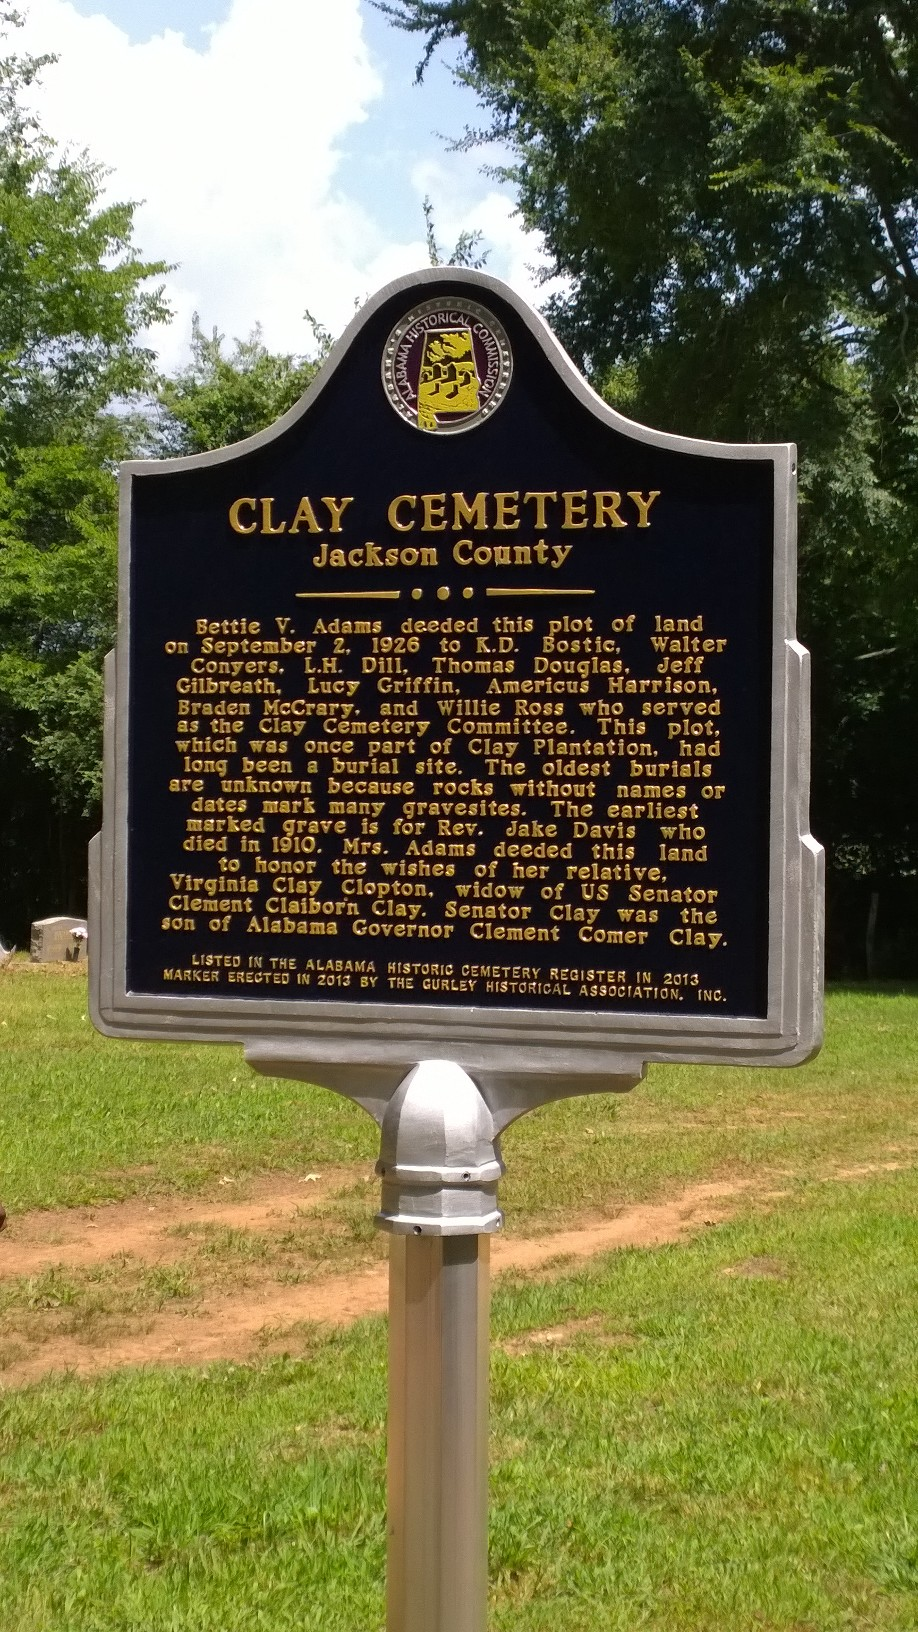 Clay Cemetery marker erected in 2015 by the Gurley Historical Association.